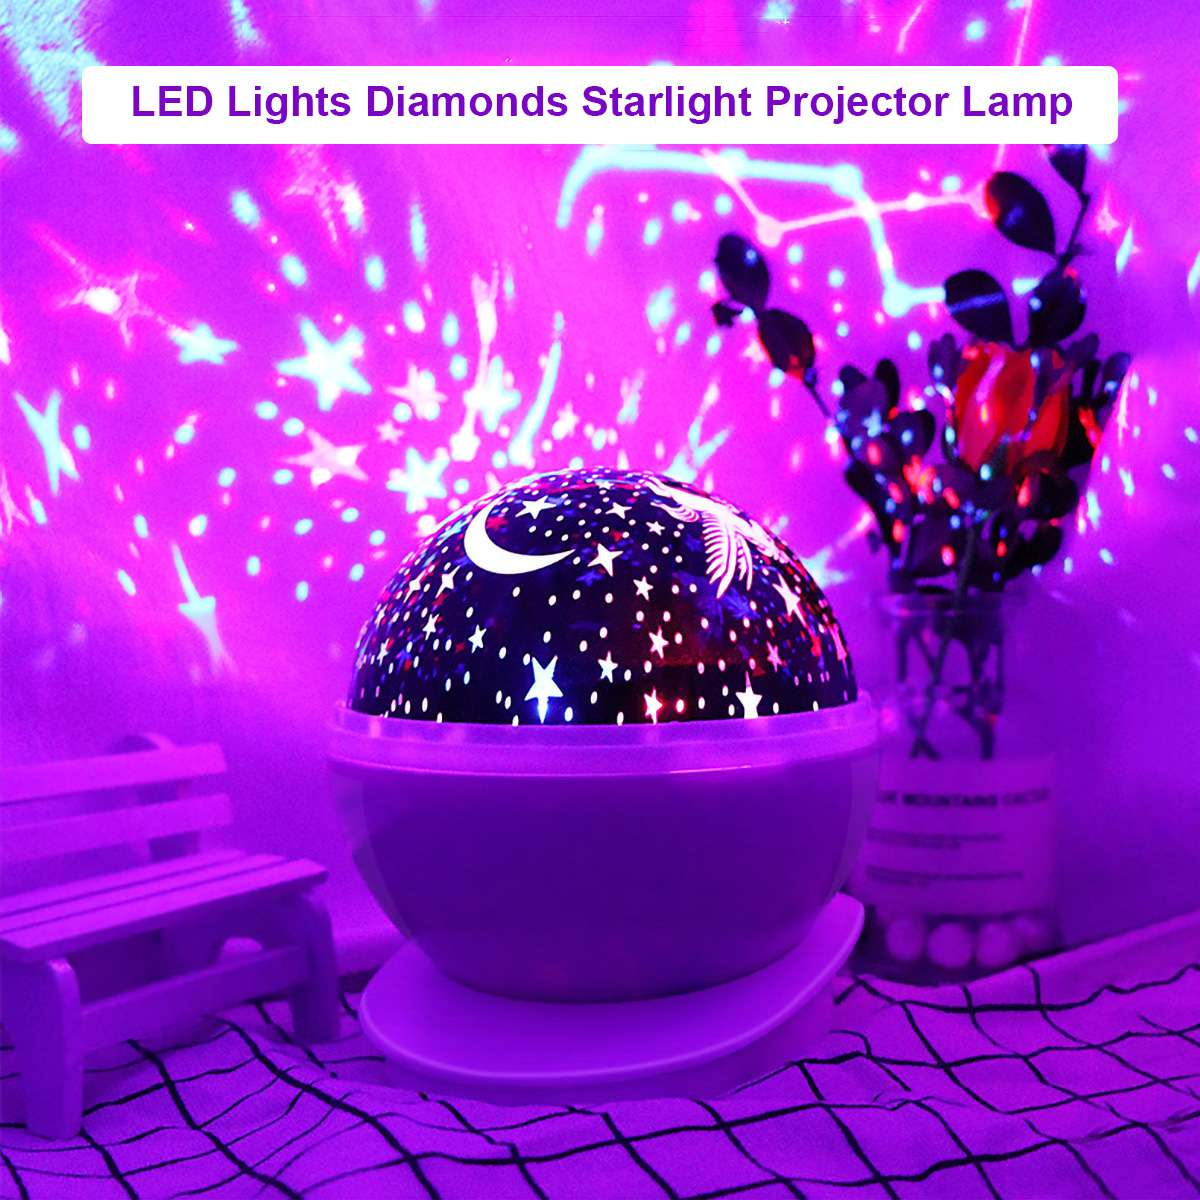 LED Night Light Automatic Rotating Star Sky Projection Lights Stars Moon Colorful LED Lights Diamonds Starlight Projector Lamp